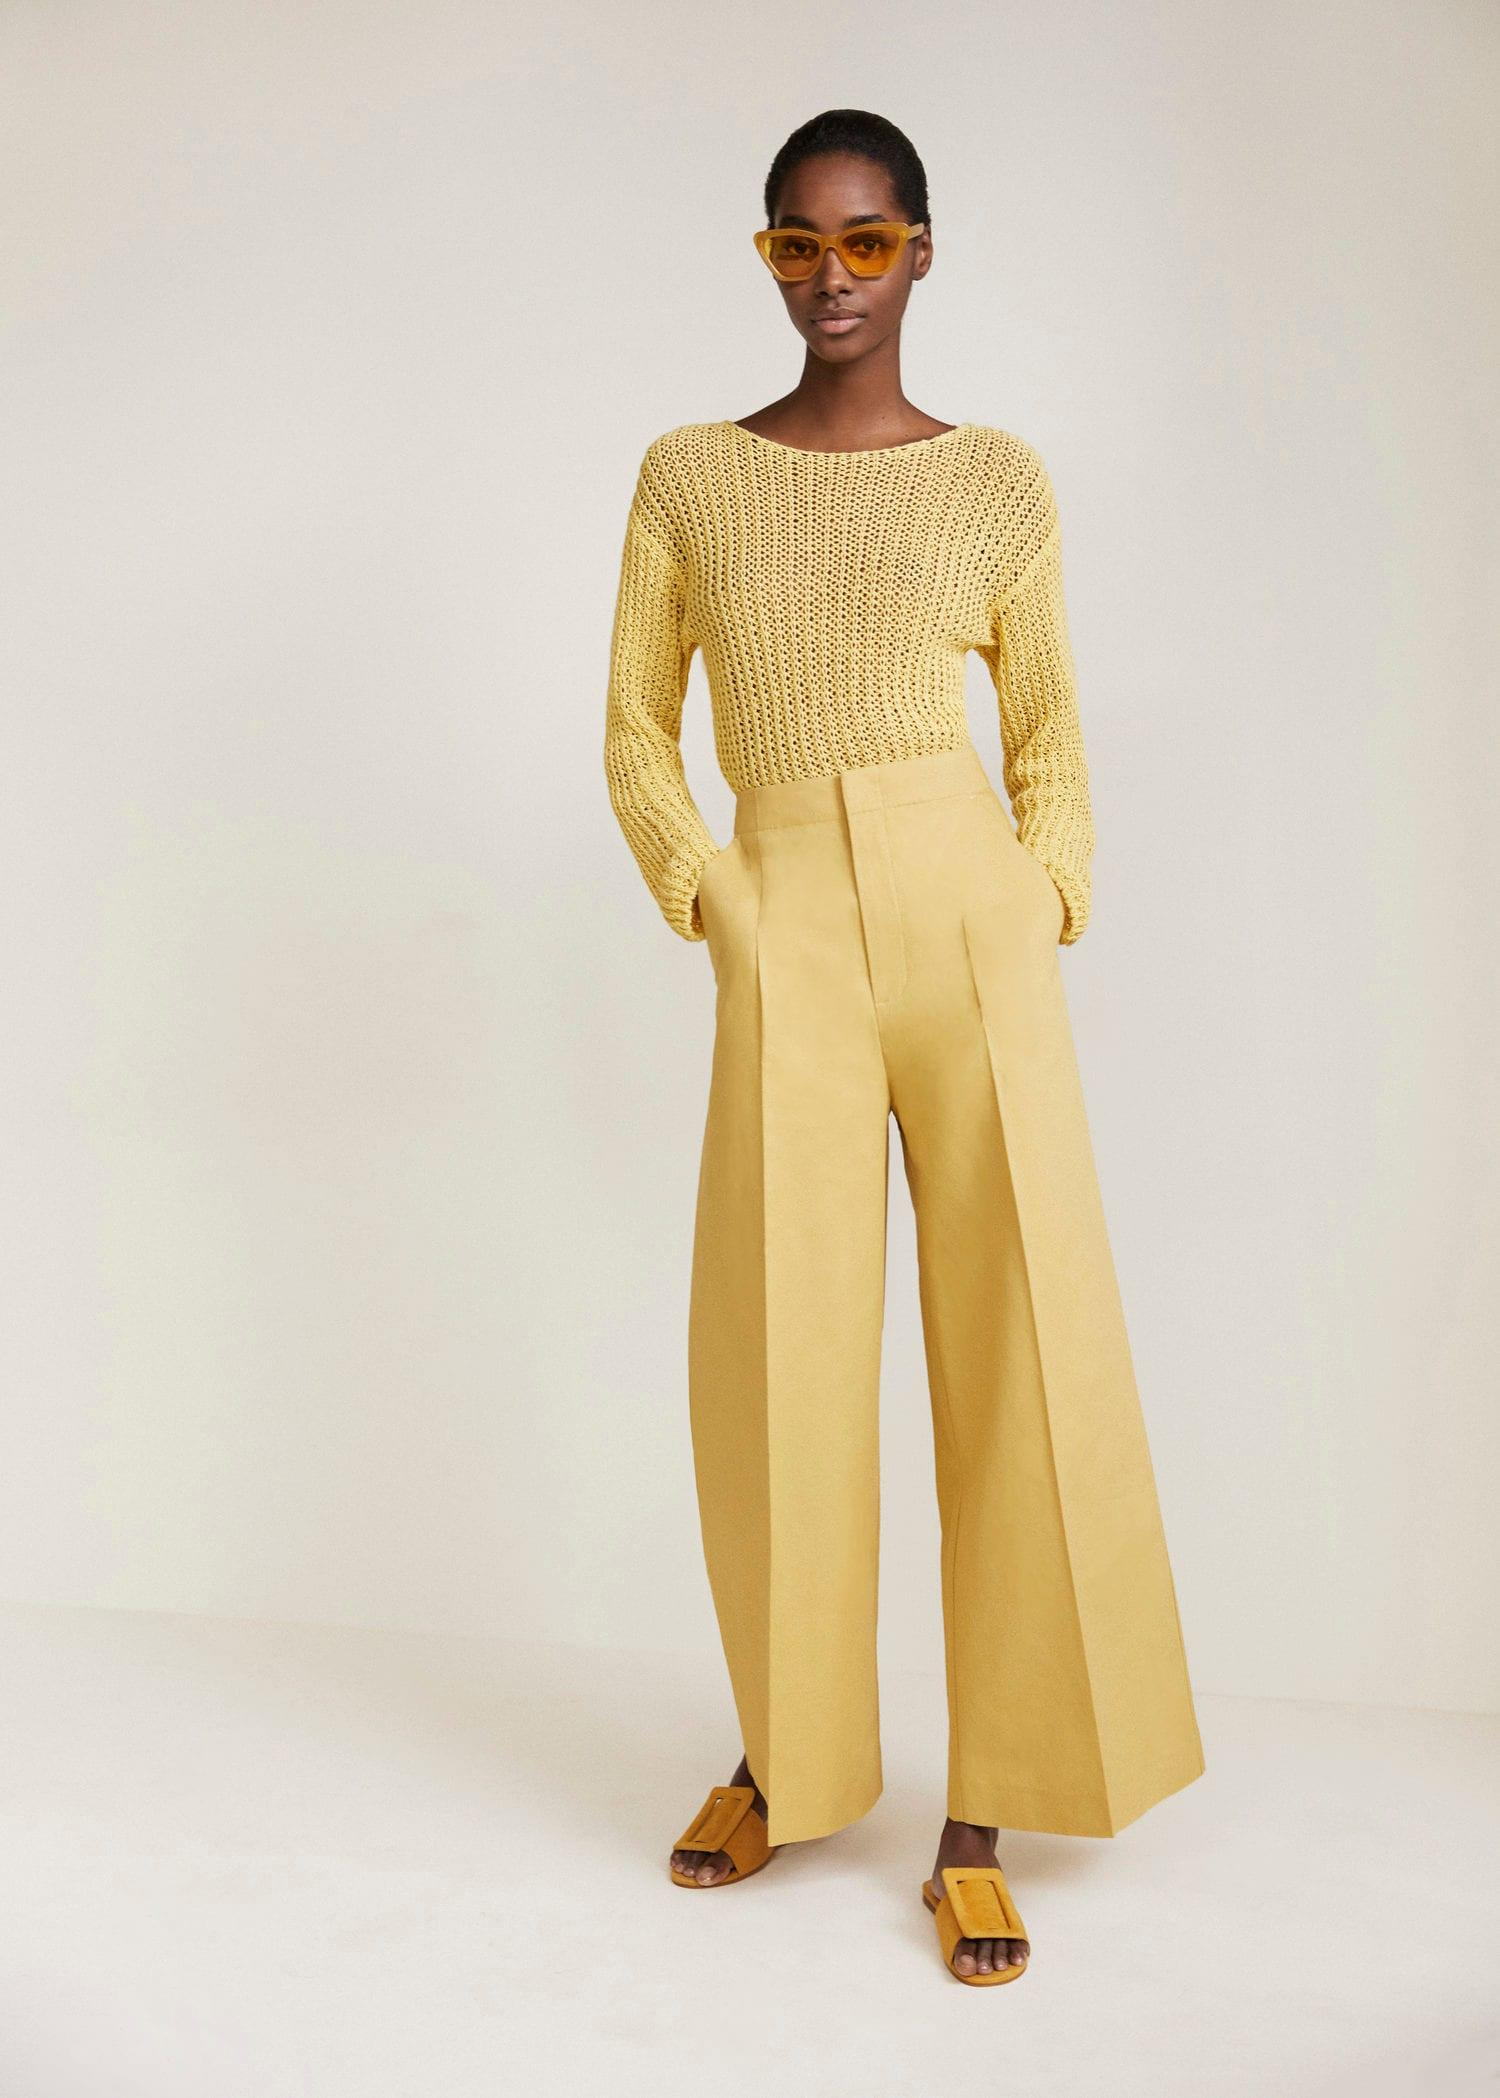 How to Wear Pastels 2019 Updated |Yellow on Yellow Tonal Monochrome| www.kittyandb.com #Yellow #Pastel #Chic #colourInspiration #OutfitInspiration #ColourPairing #monochrome #YellowAesthetic